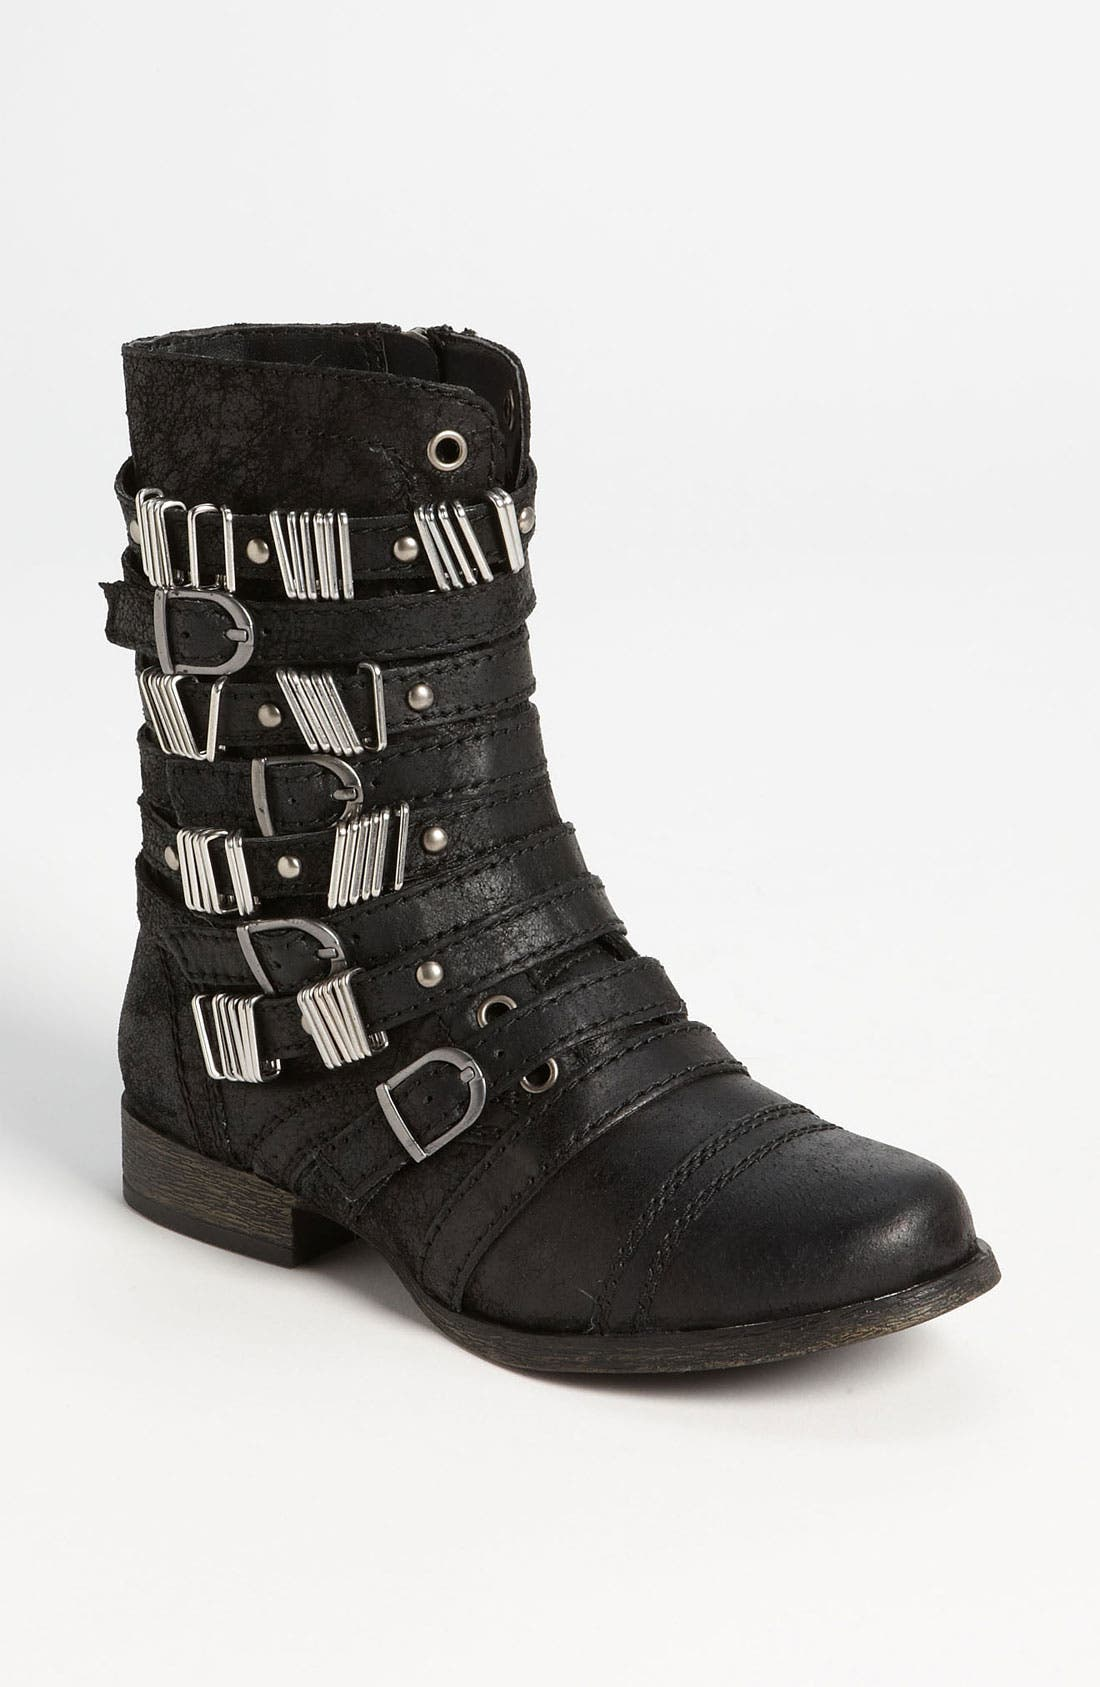 Alternate Image 1 Selected - Steve Madden 'Tyrantt Buckles' Boot